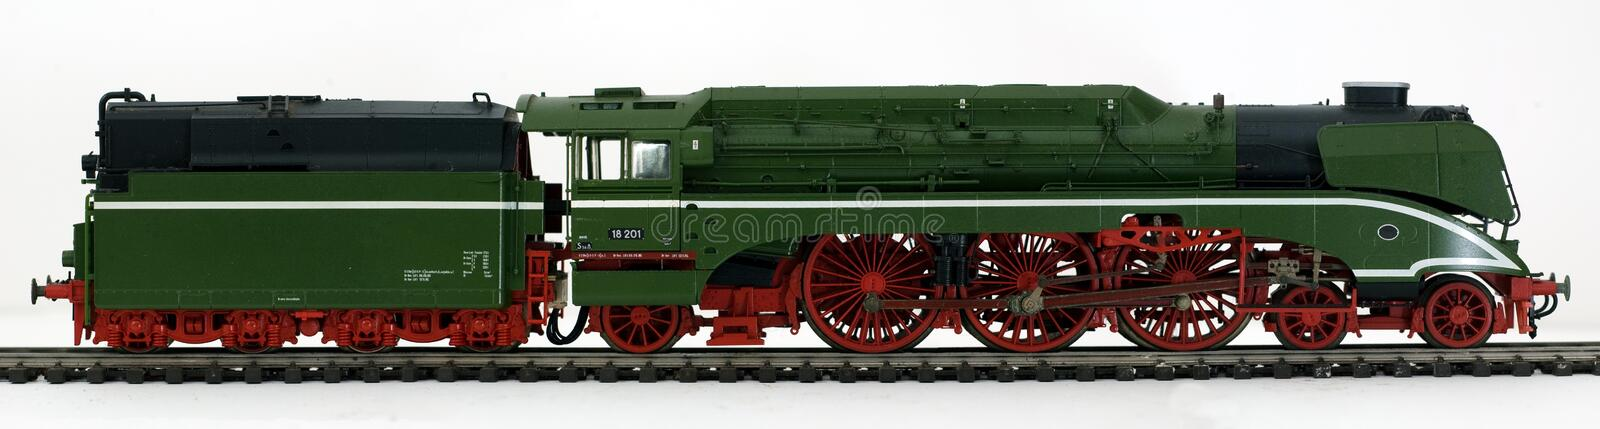 Old green steam locomotive stock images